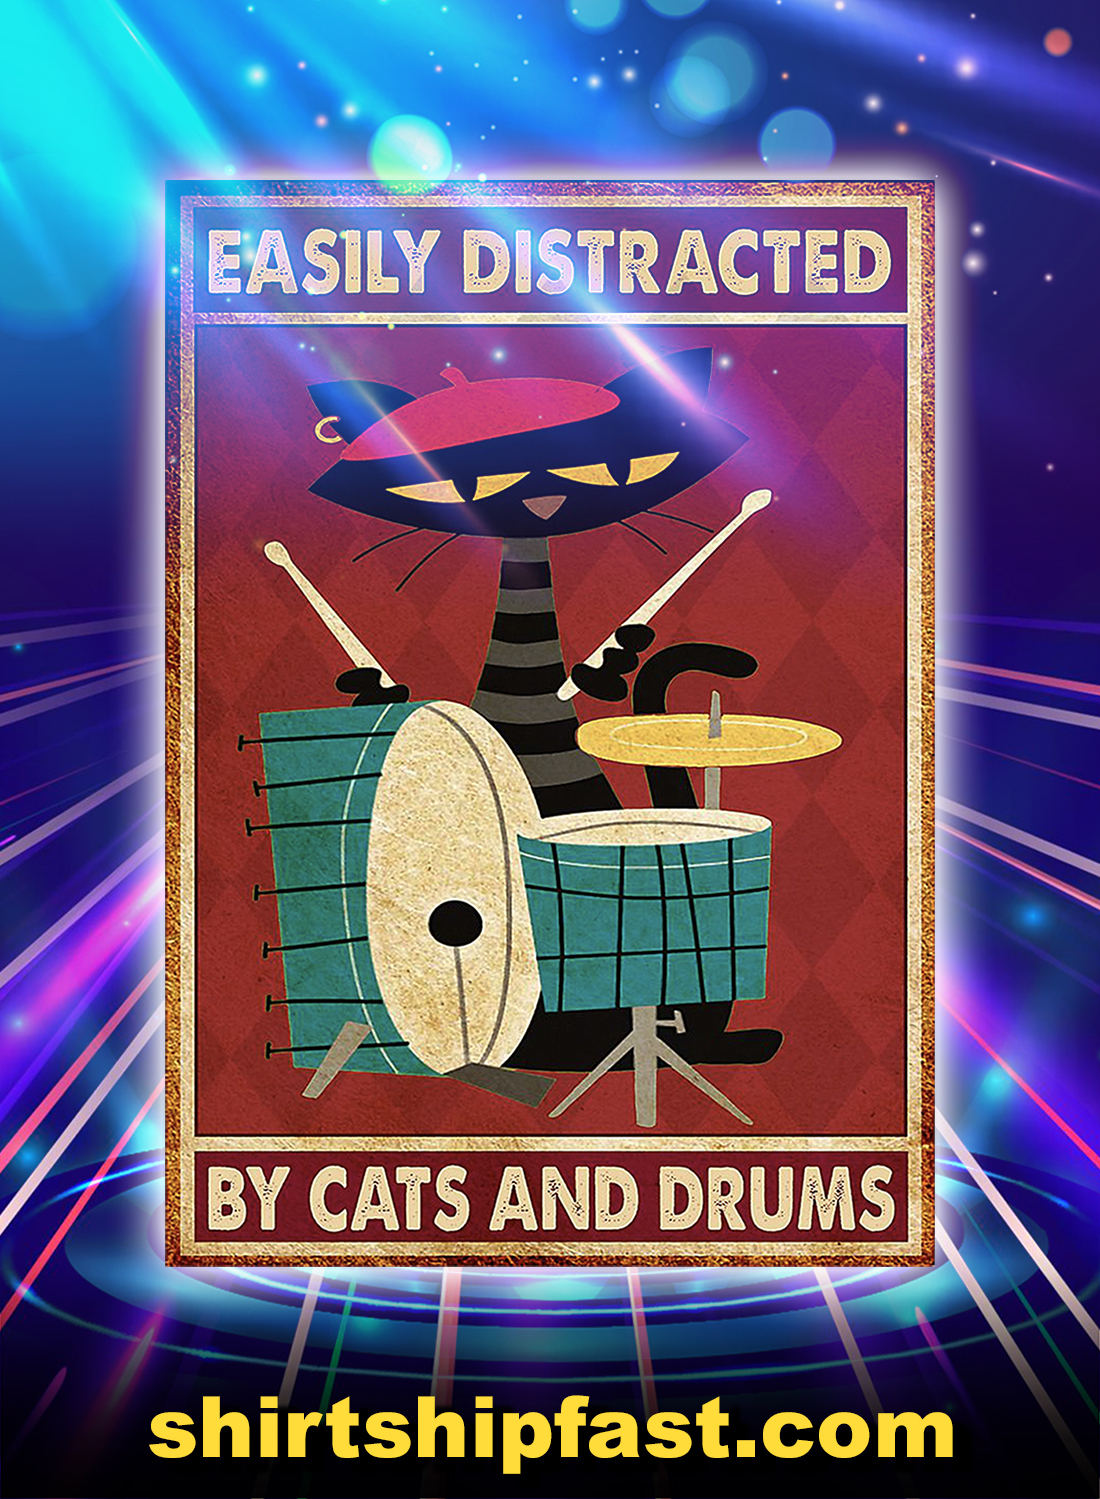 Easily distracted by cats and drums poster - A4